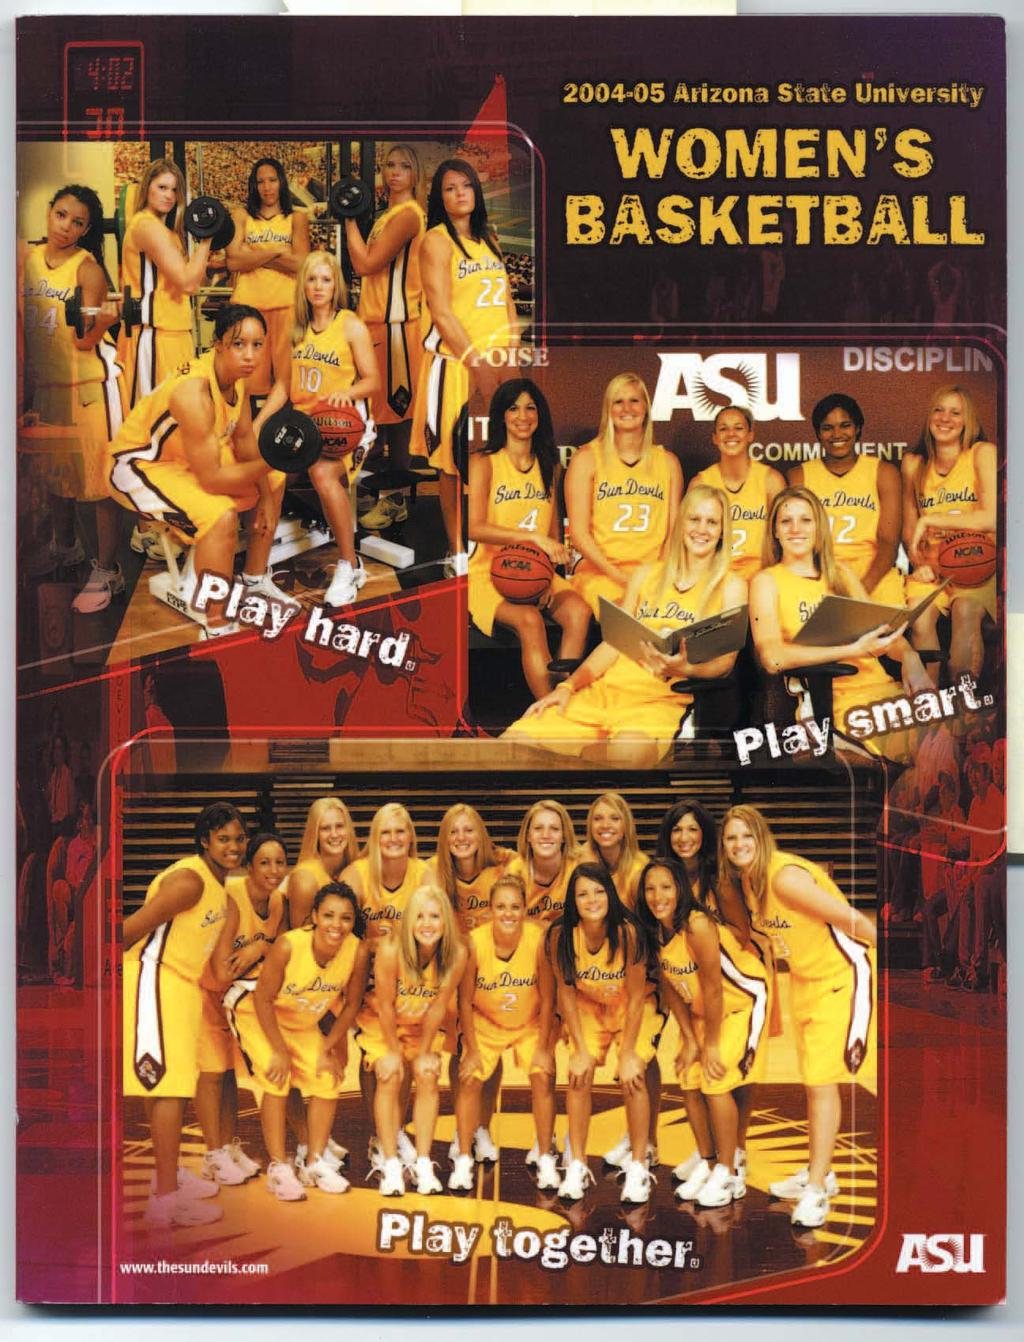 Create an advertising campaign that incorporates the five attributes of women s college basketball that attract fans to attend games.